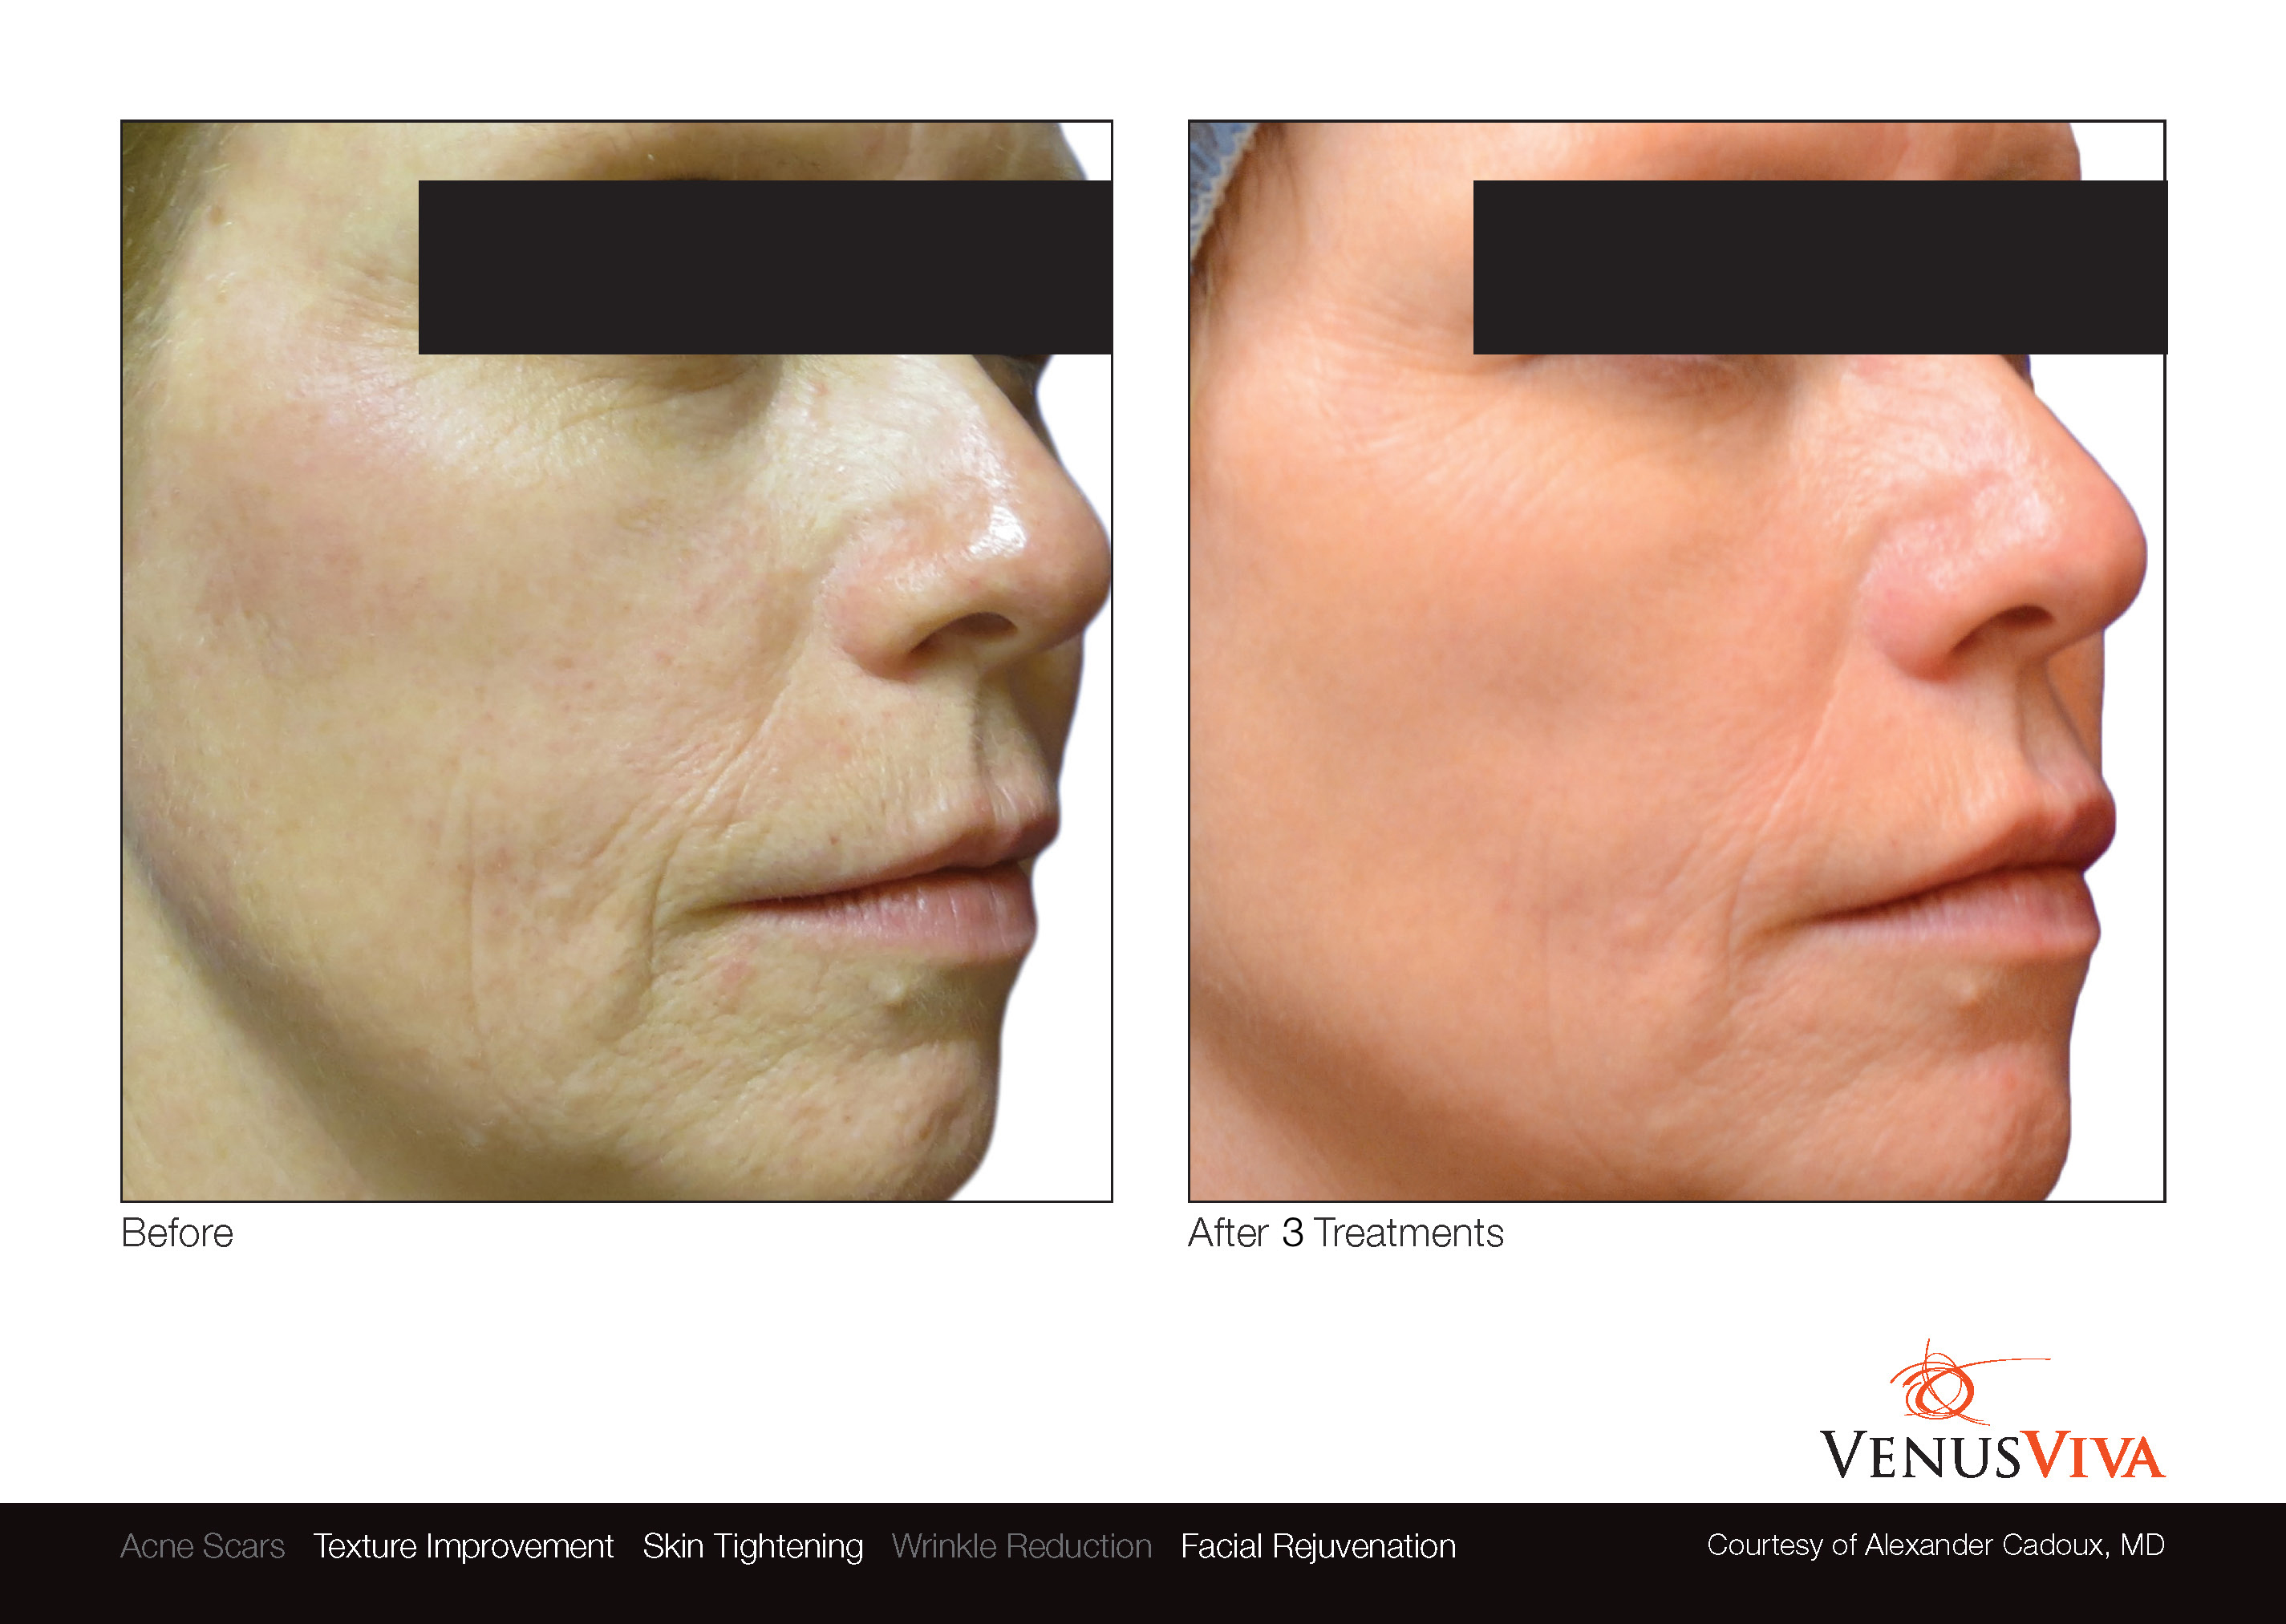 VenusViva Treatments to reverse anti-aging and reduce scarring.